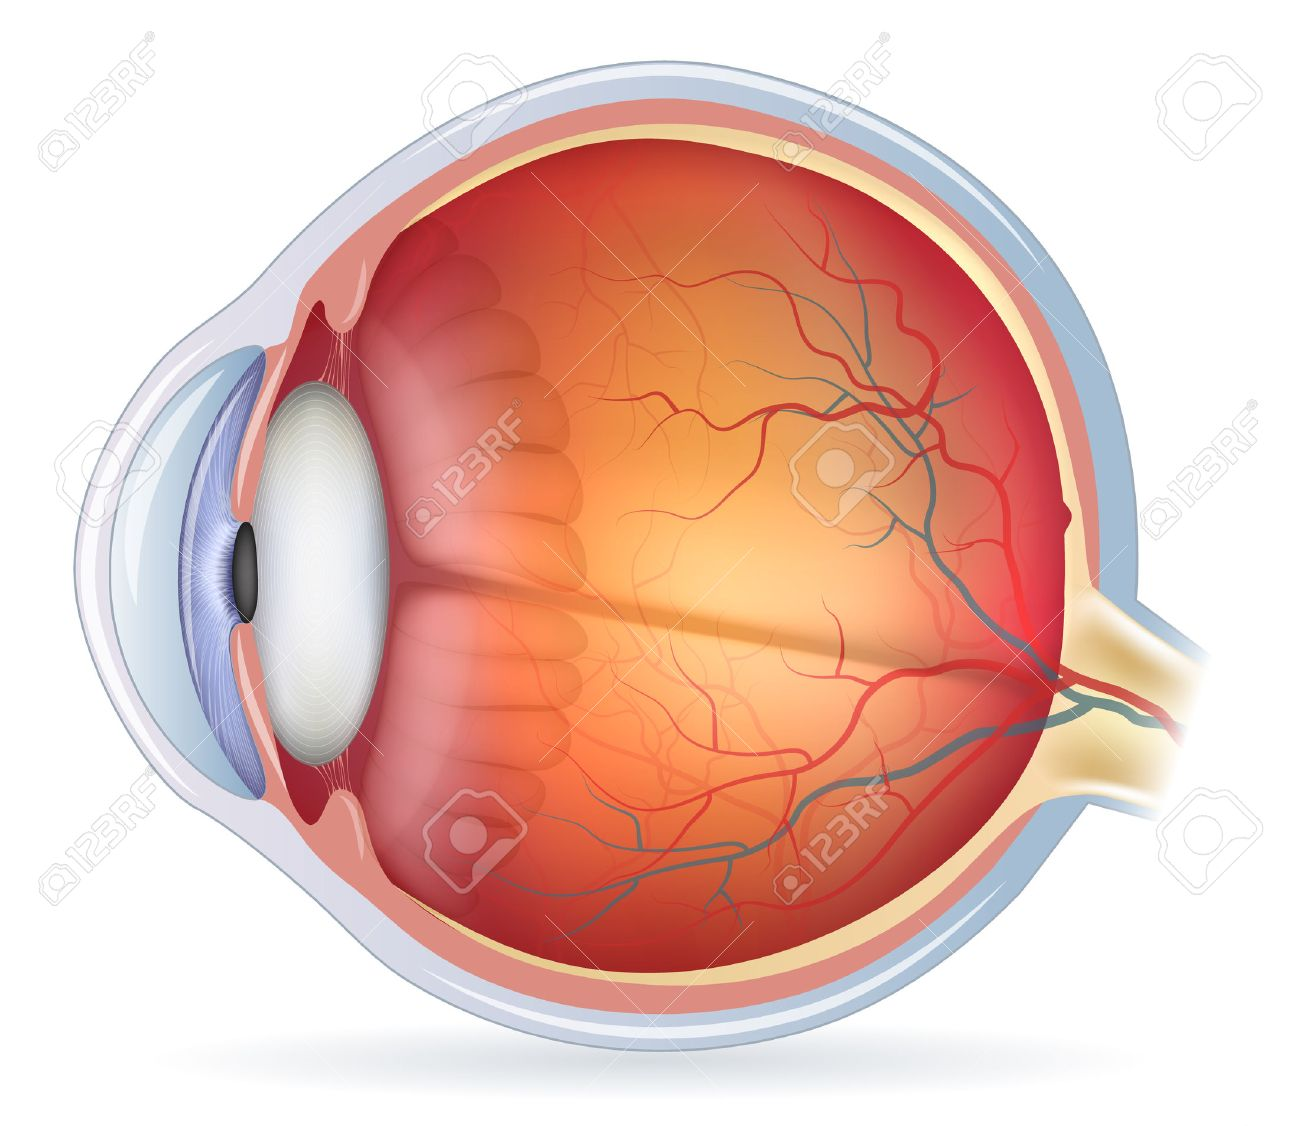 hight resolution of human eye anatomy diagram medical illustration isolated on a white bacground stock vector